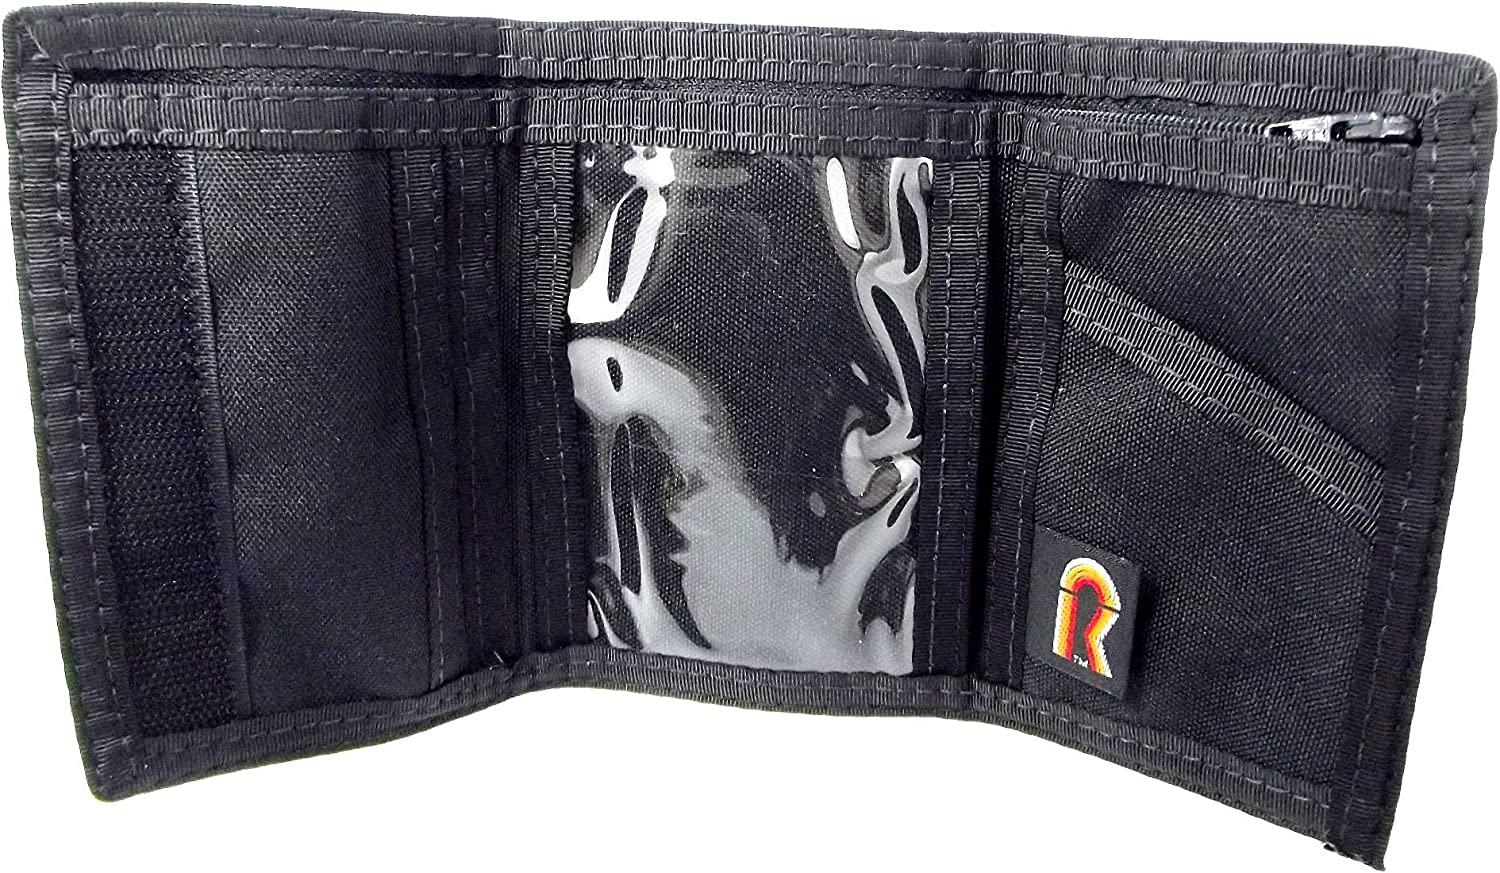 Details about  /RAINBOW METALLIC RETRACTABLE ID HOLDER WALLET NEW WITH TAG $20